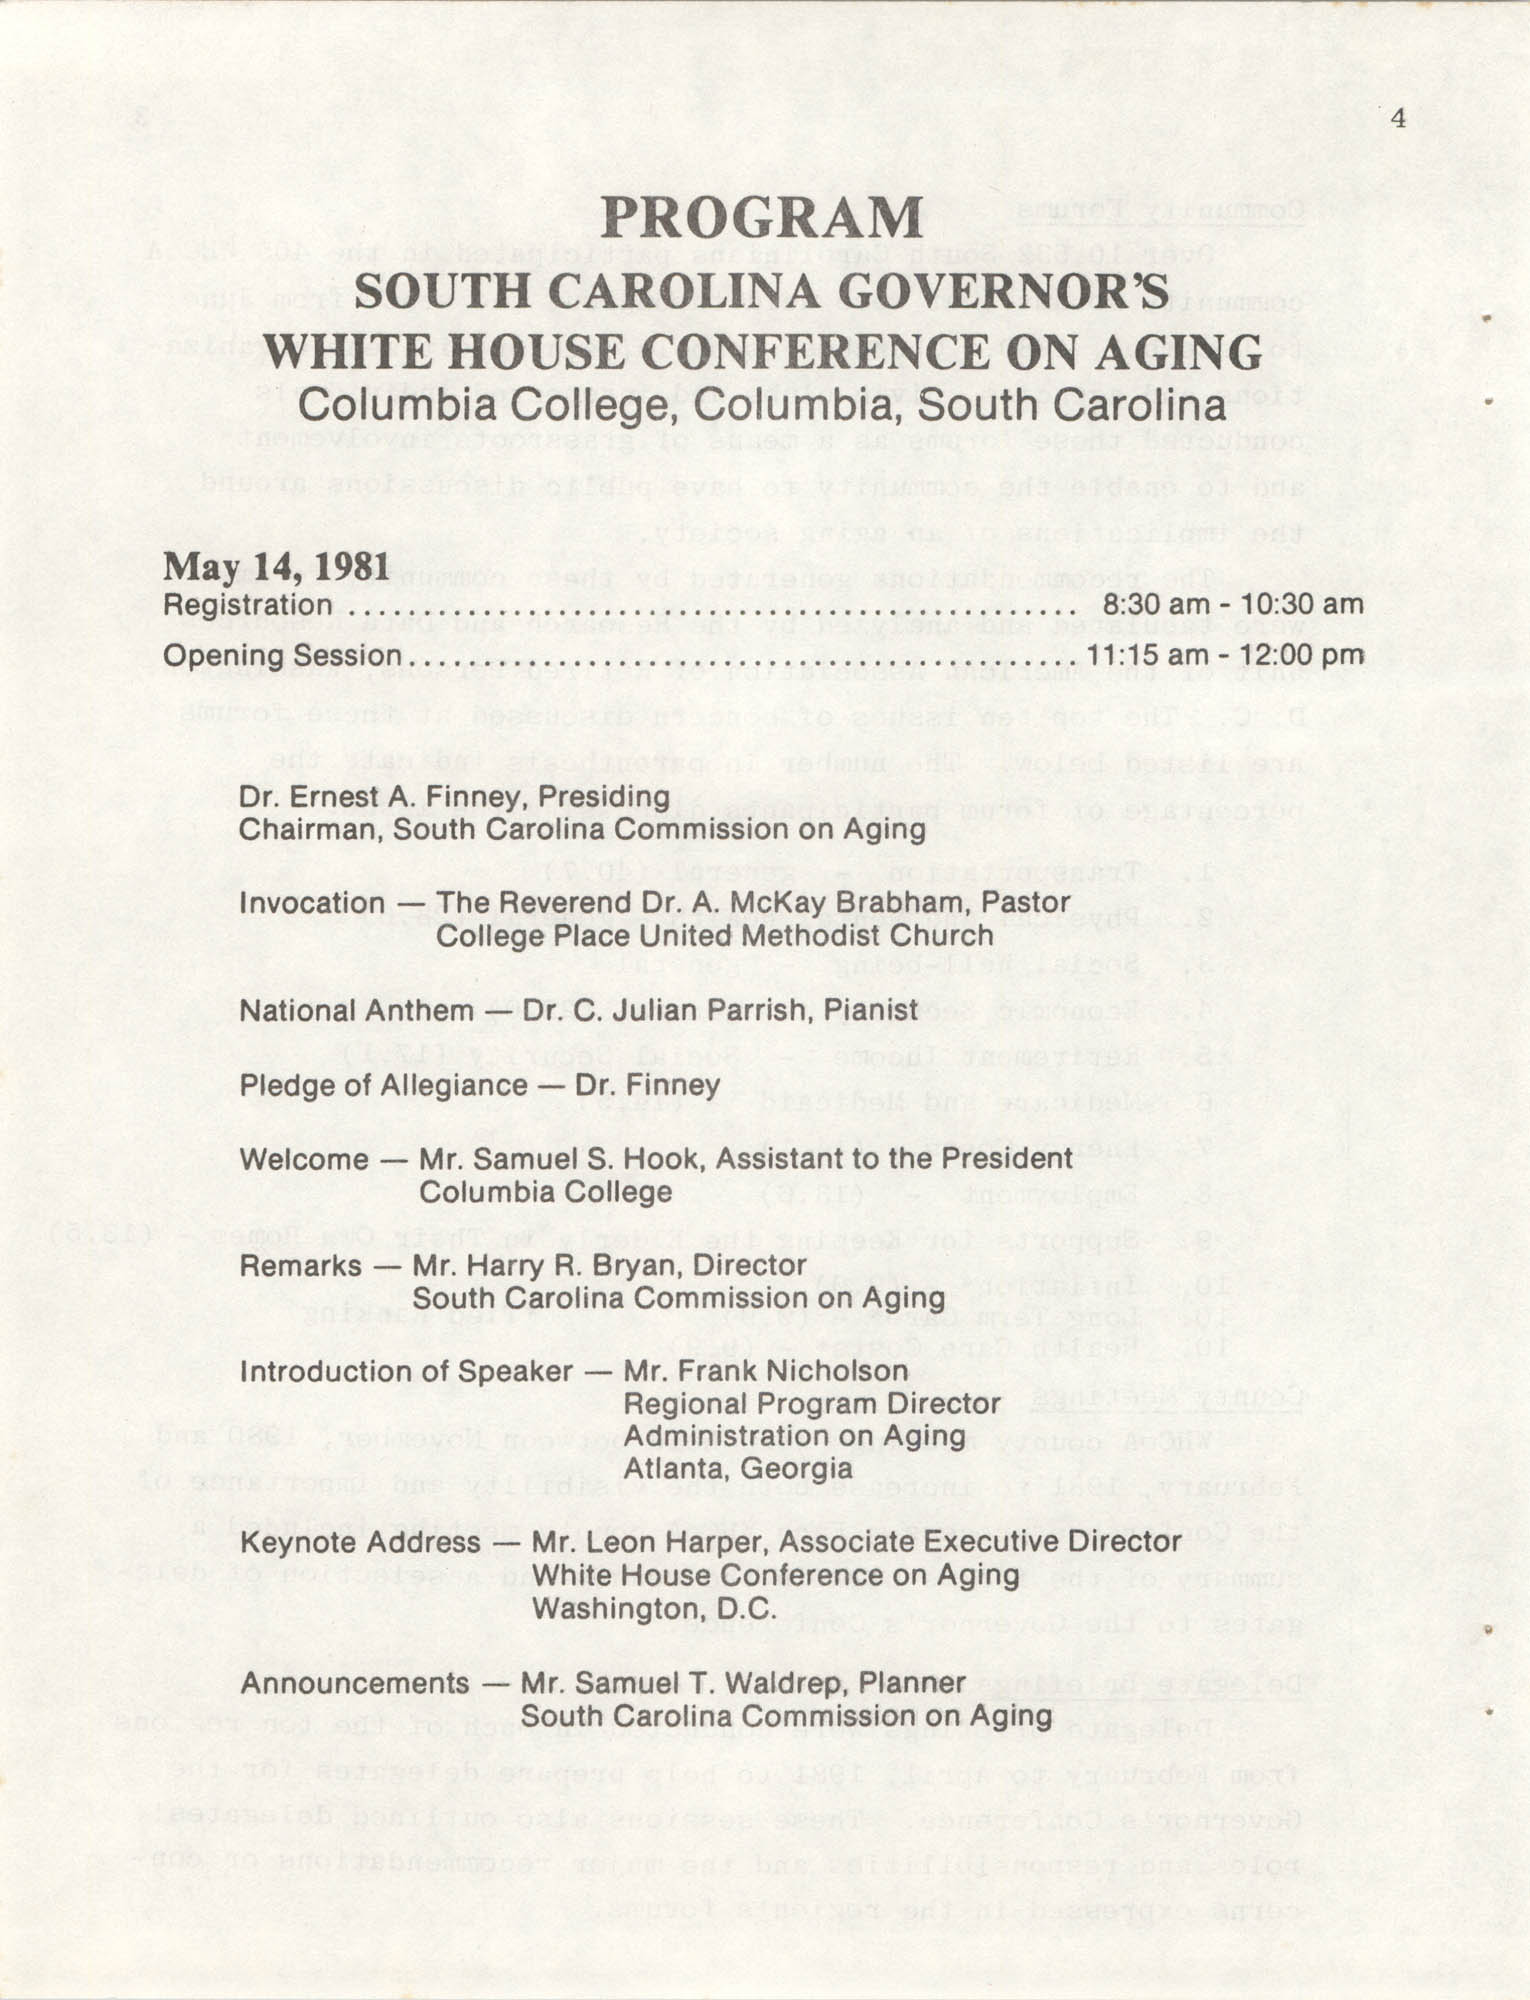 South Carolina Governor's White House Conference on Aging Proceedings, 1981, Page 4